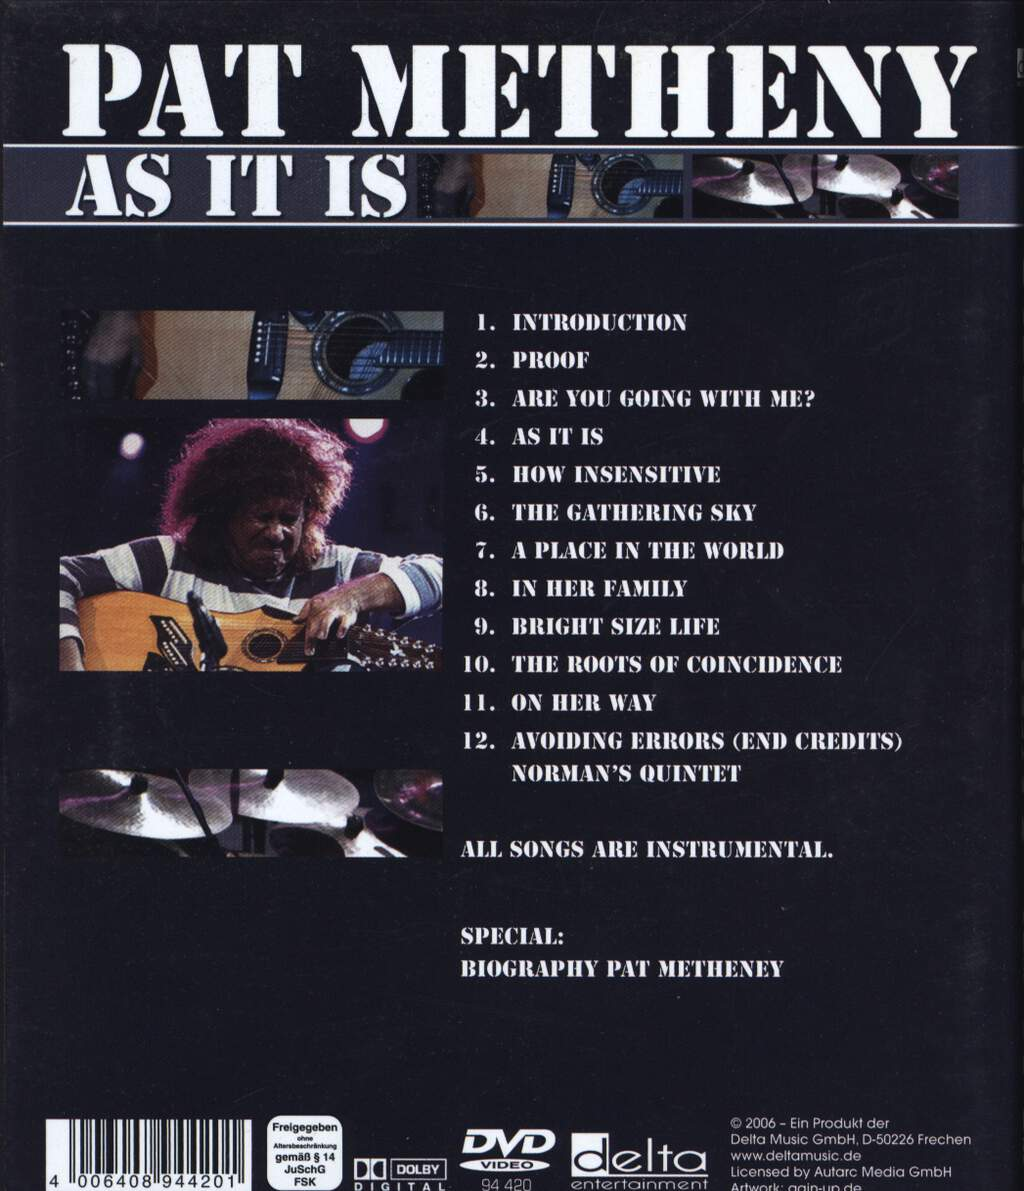 Pat Metheny: As It Is, DVD